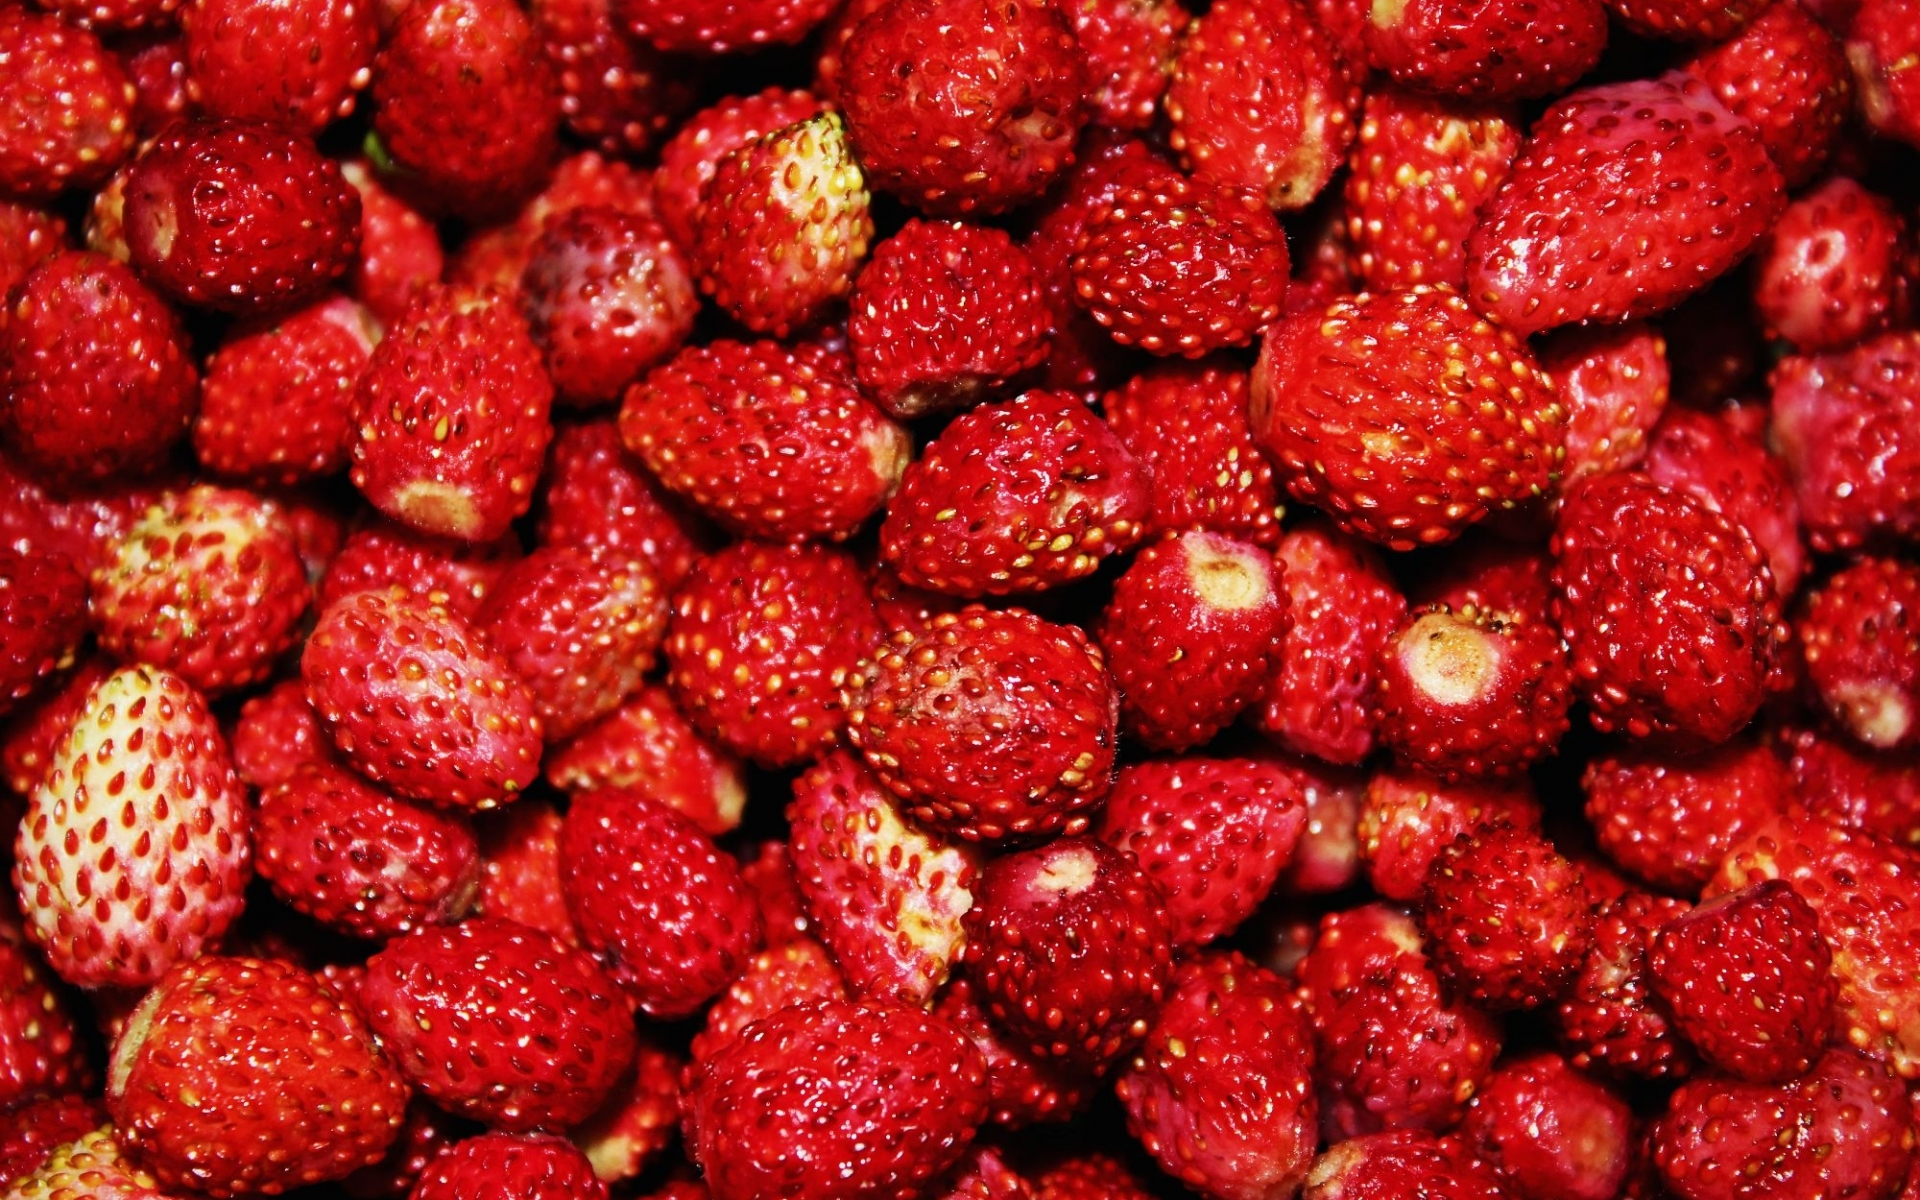 41460 download wallpaper Strawberry, Background screensavers and pictures for free